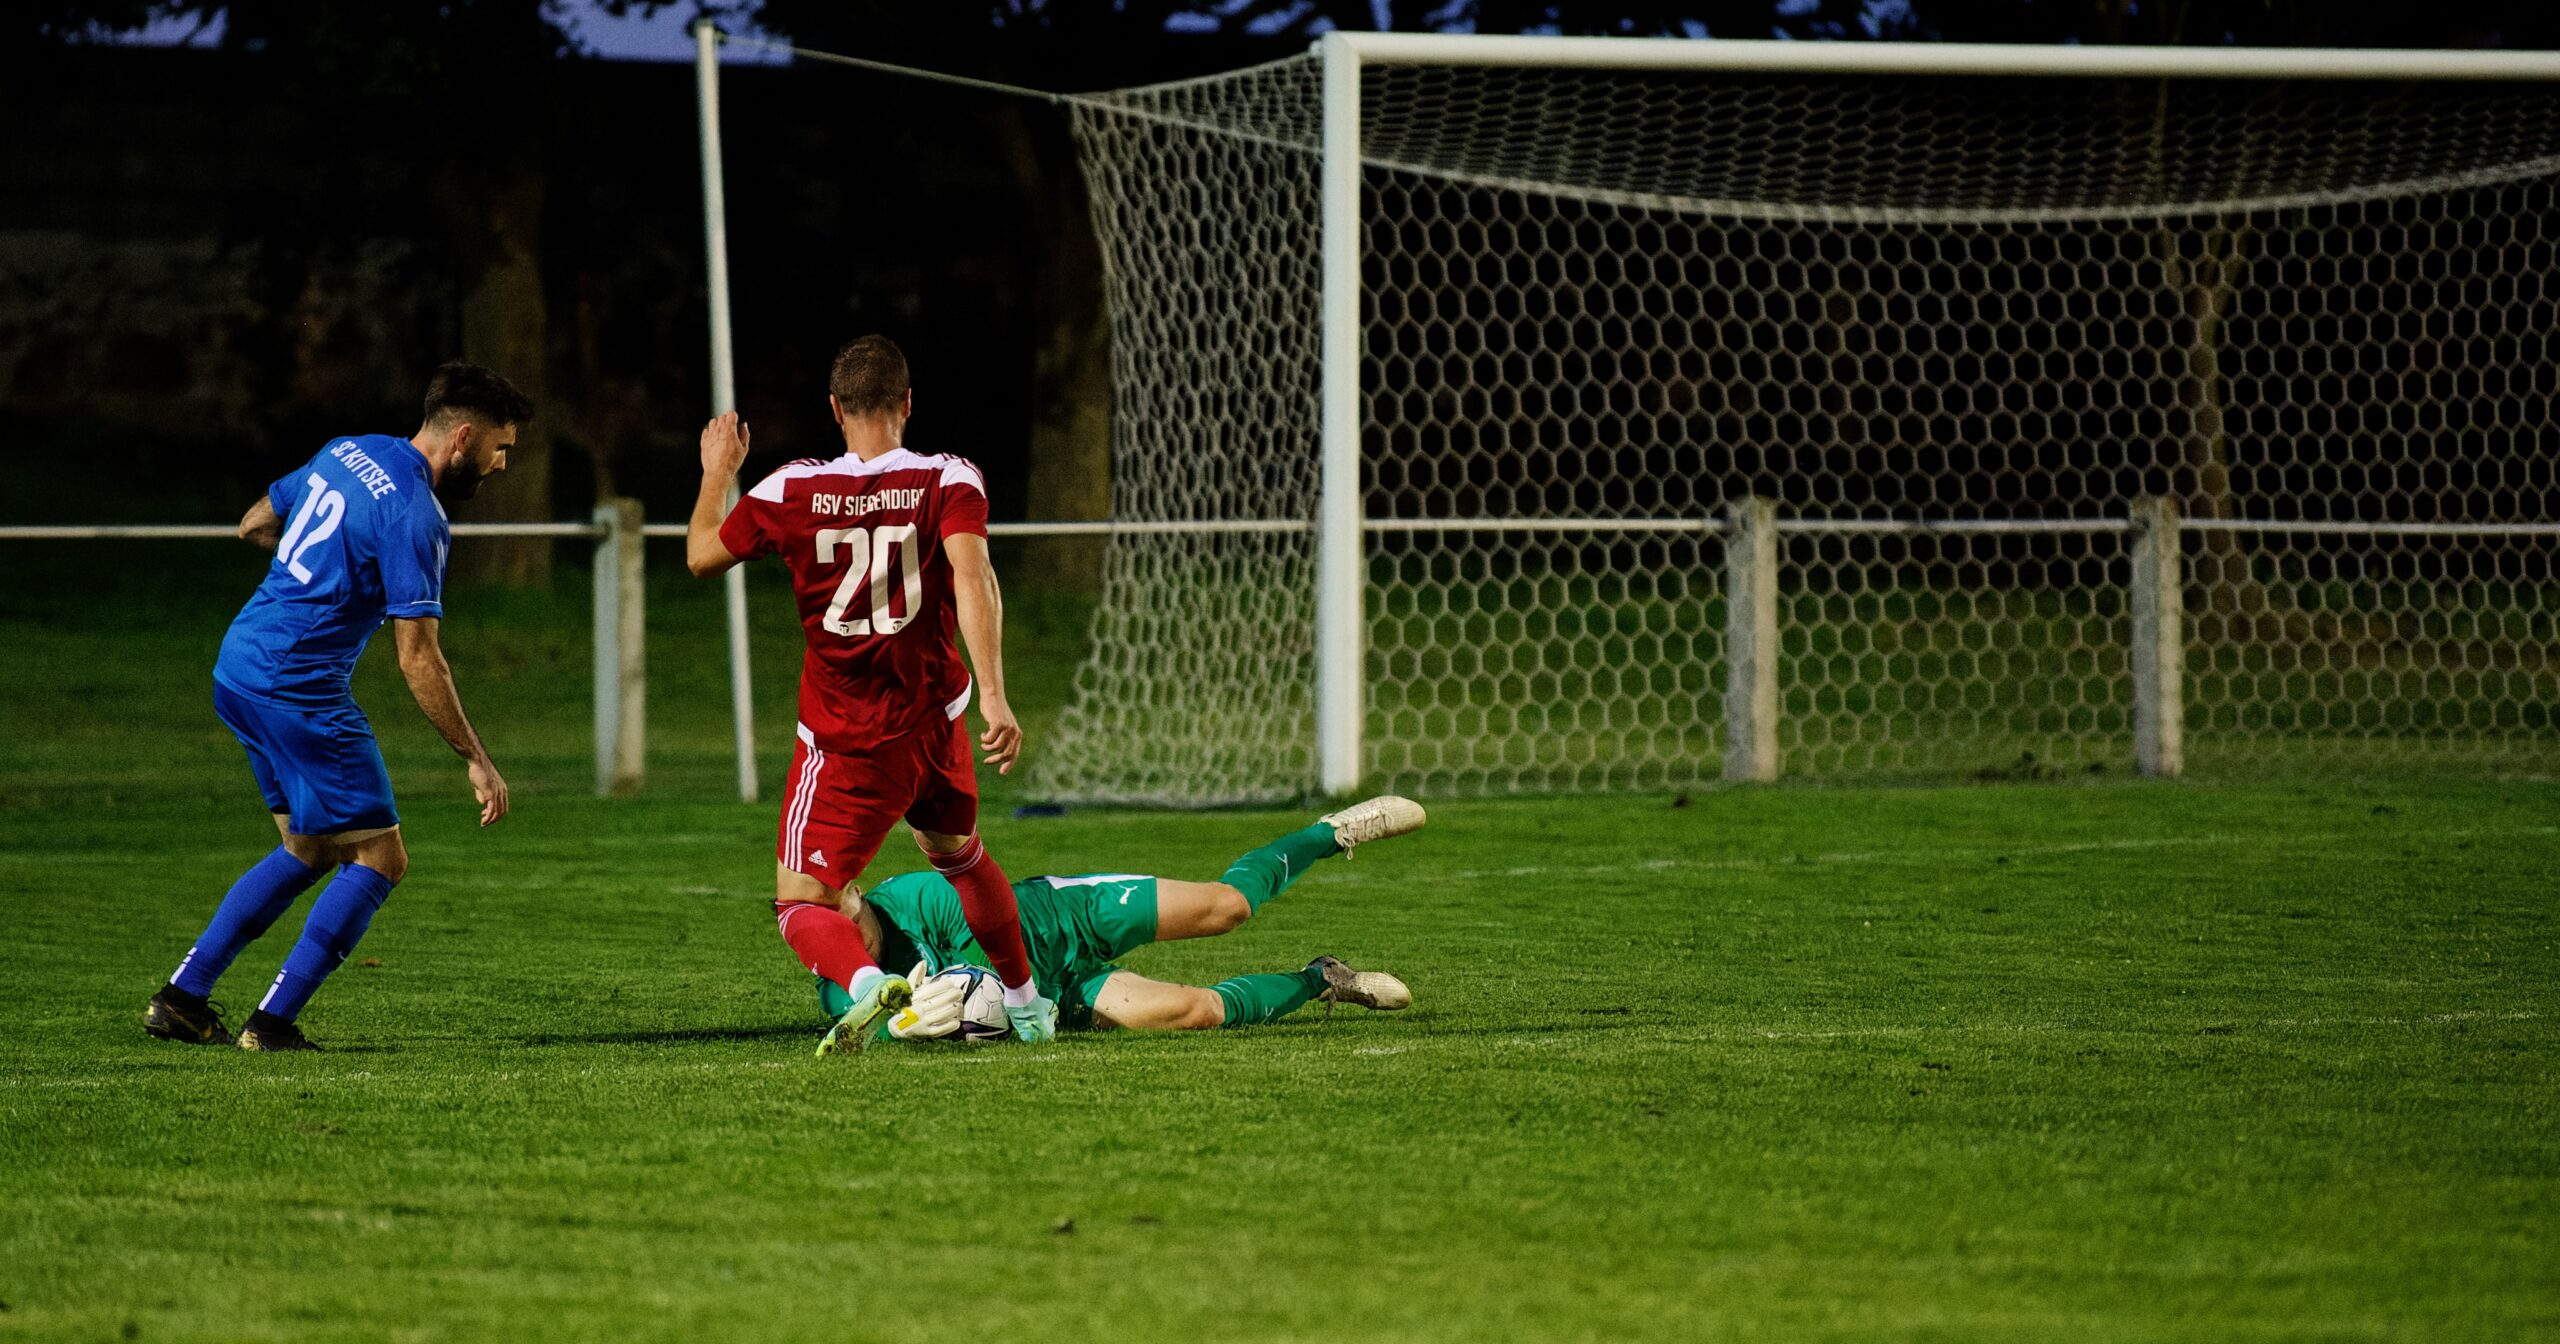 Keeper Barinec snatches the ball from Kovacec